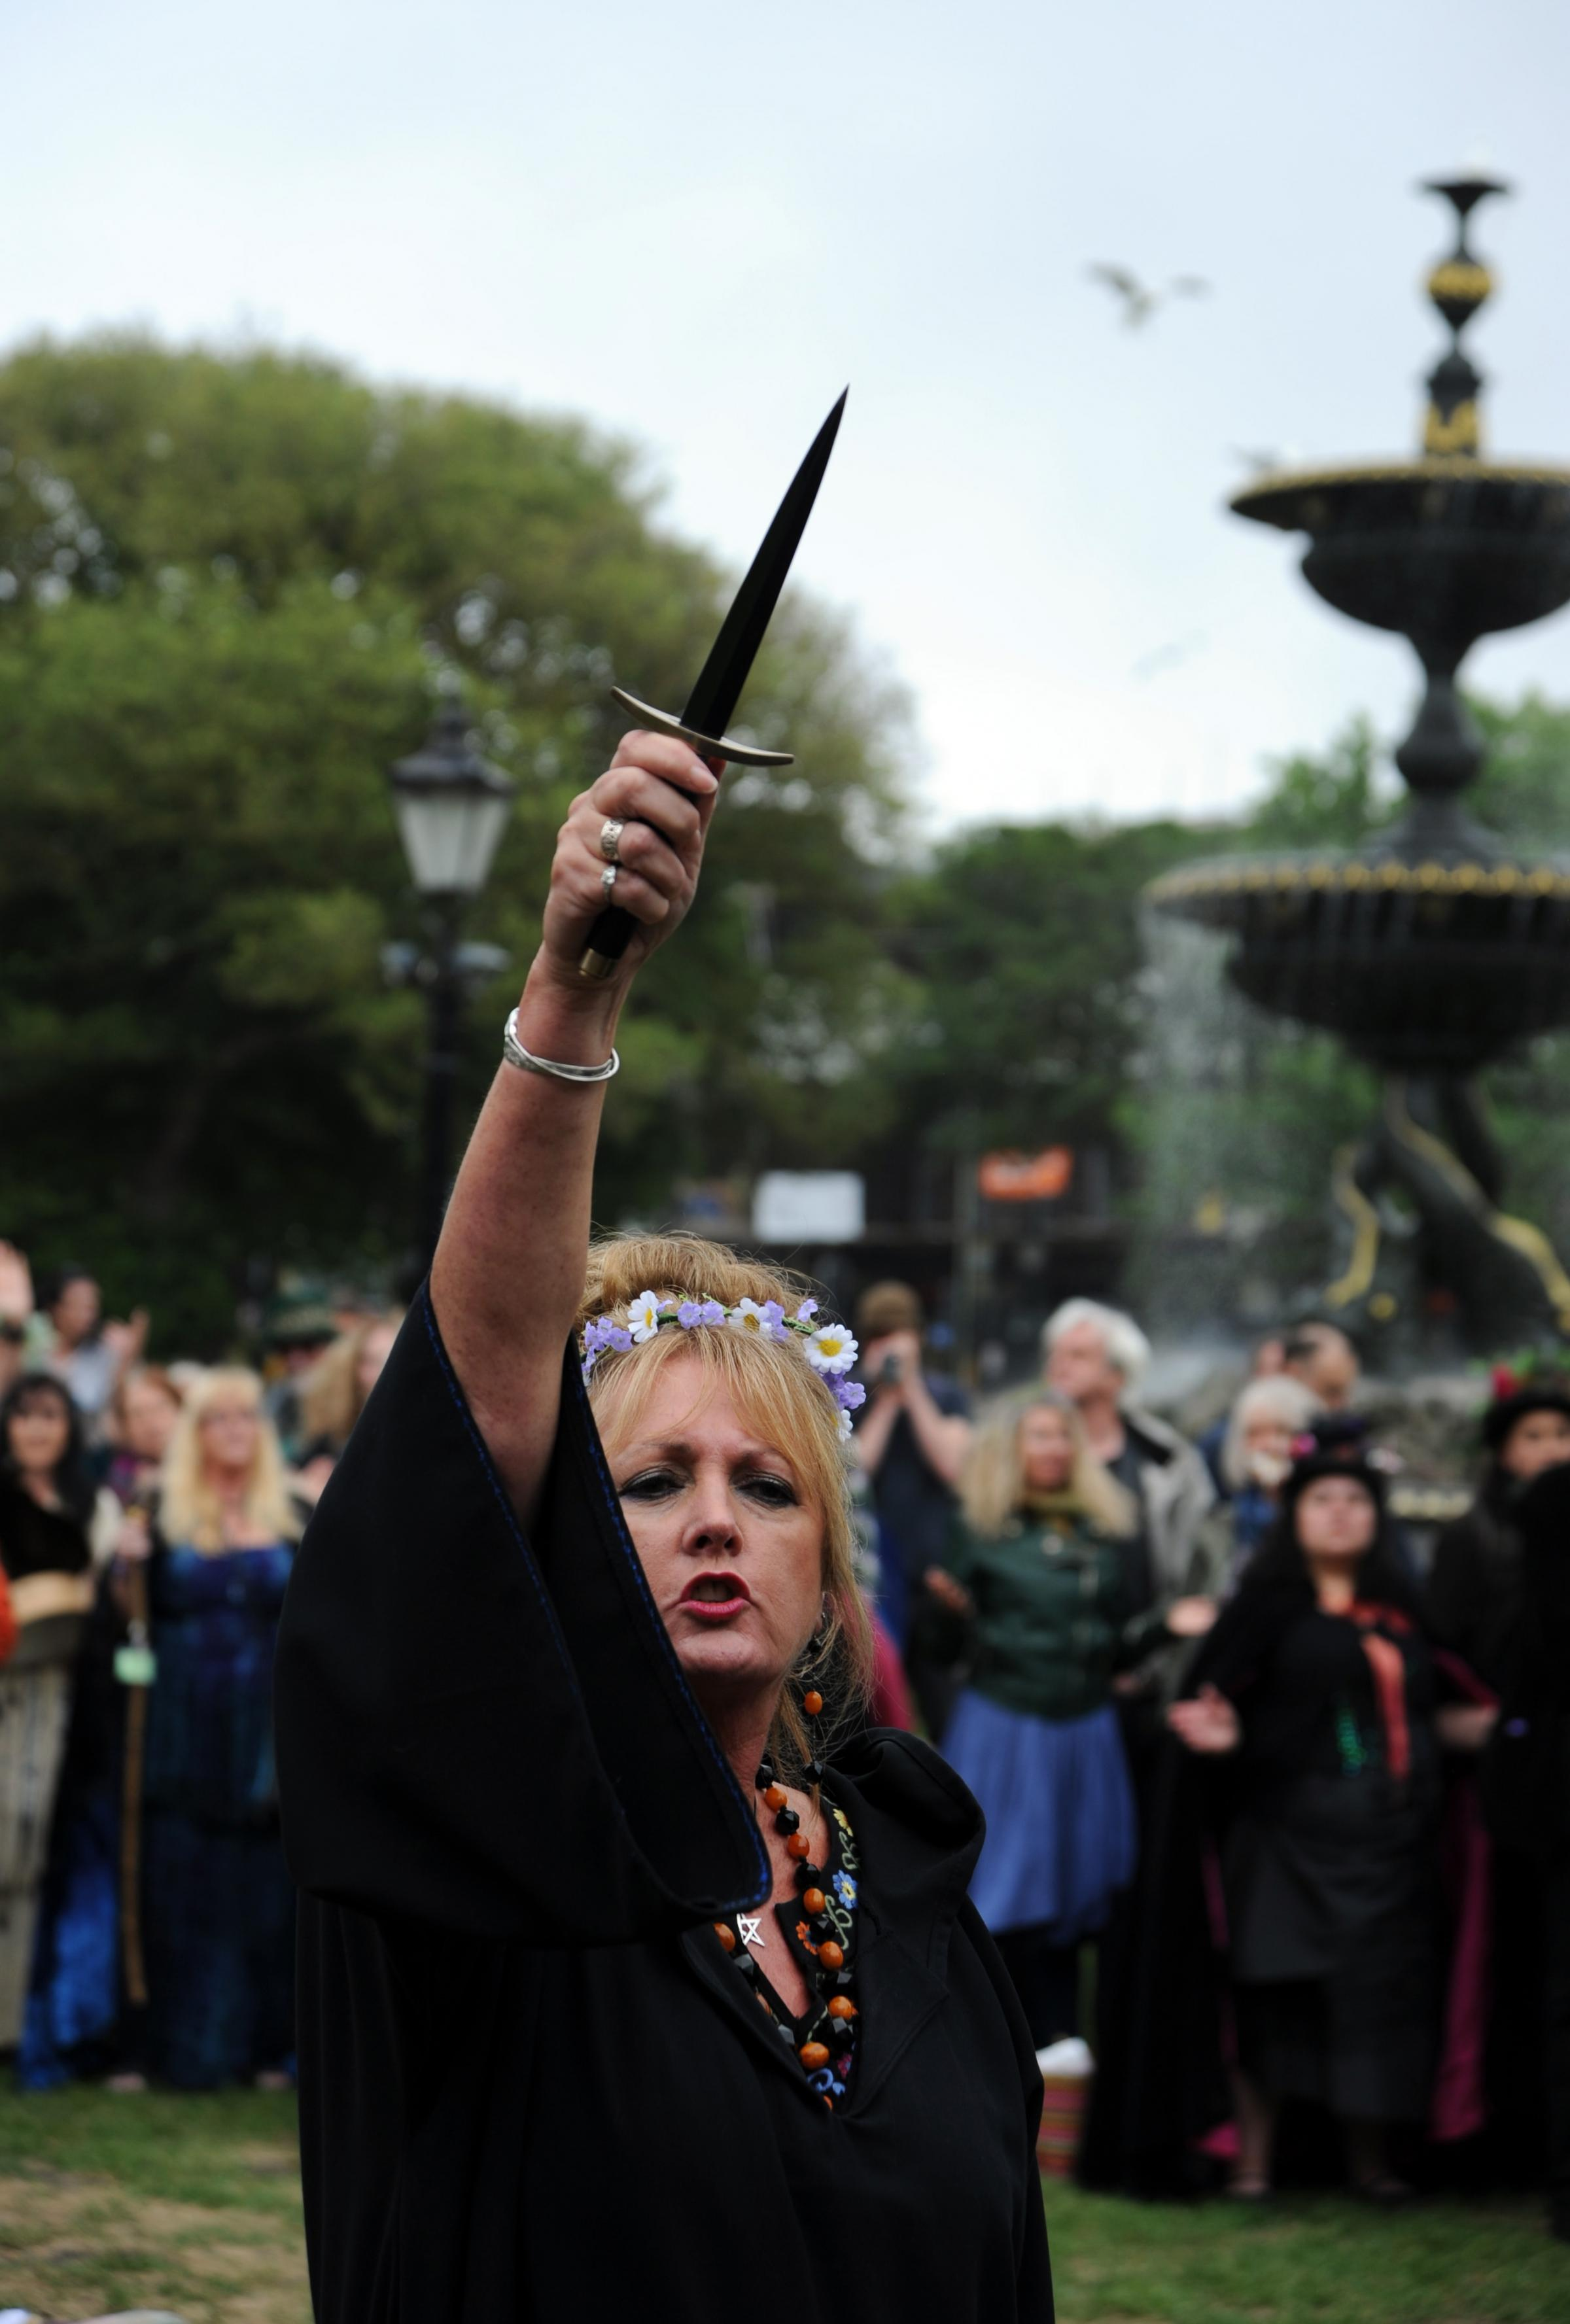 Witches descend on Brighton for plaque unveiling